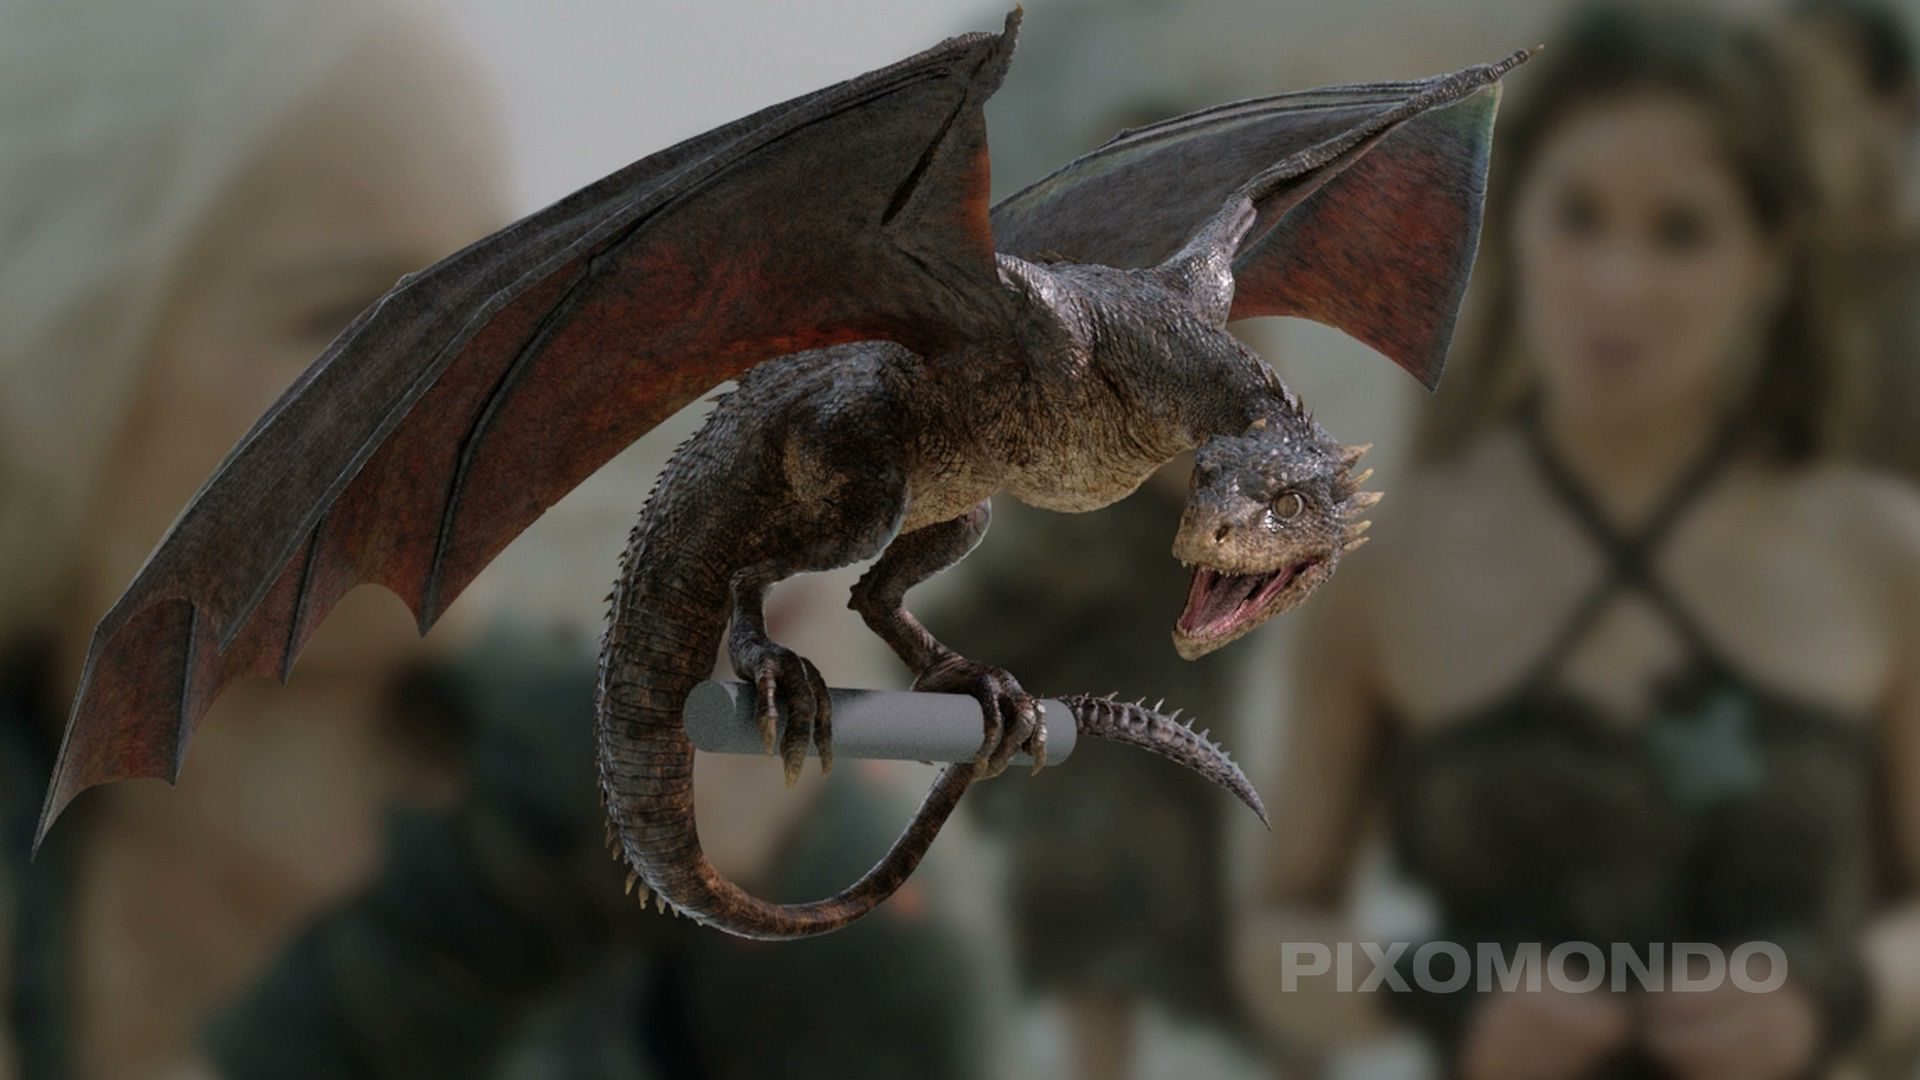 drogon game of thrones models - Google Search | Drogon ...